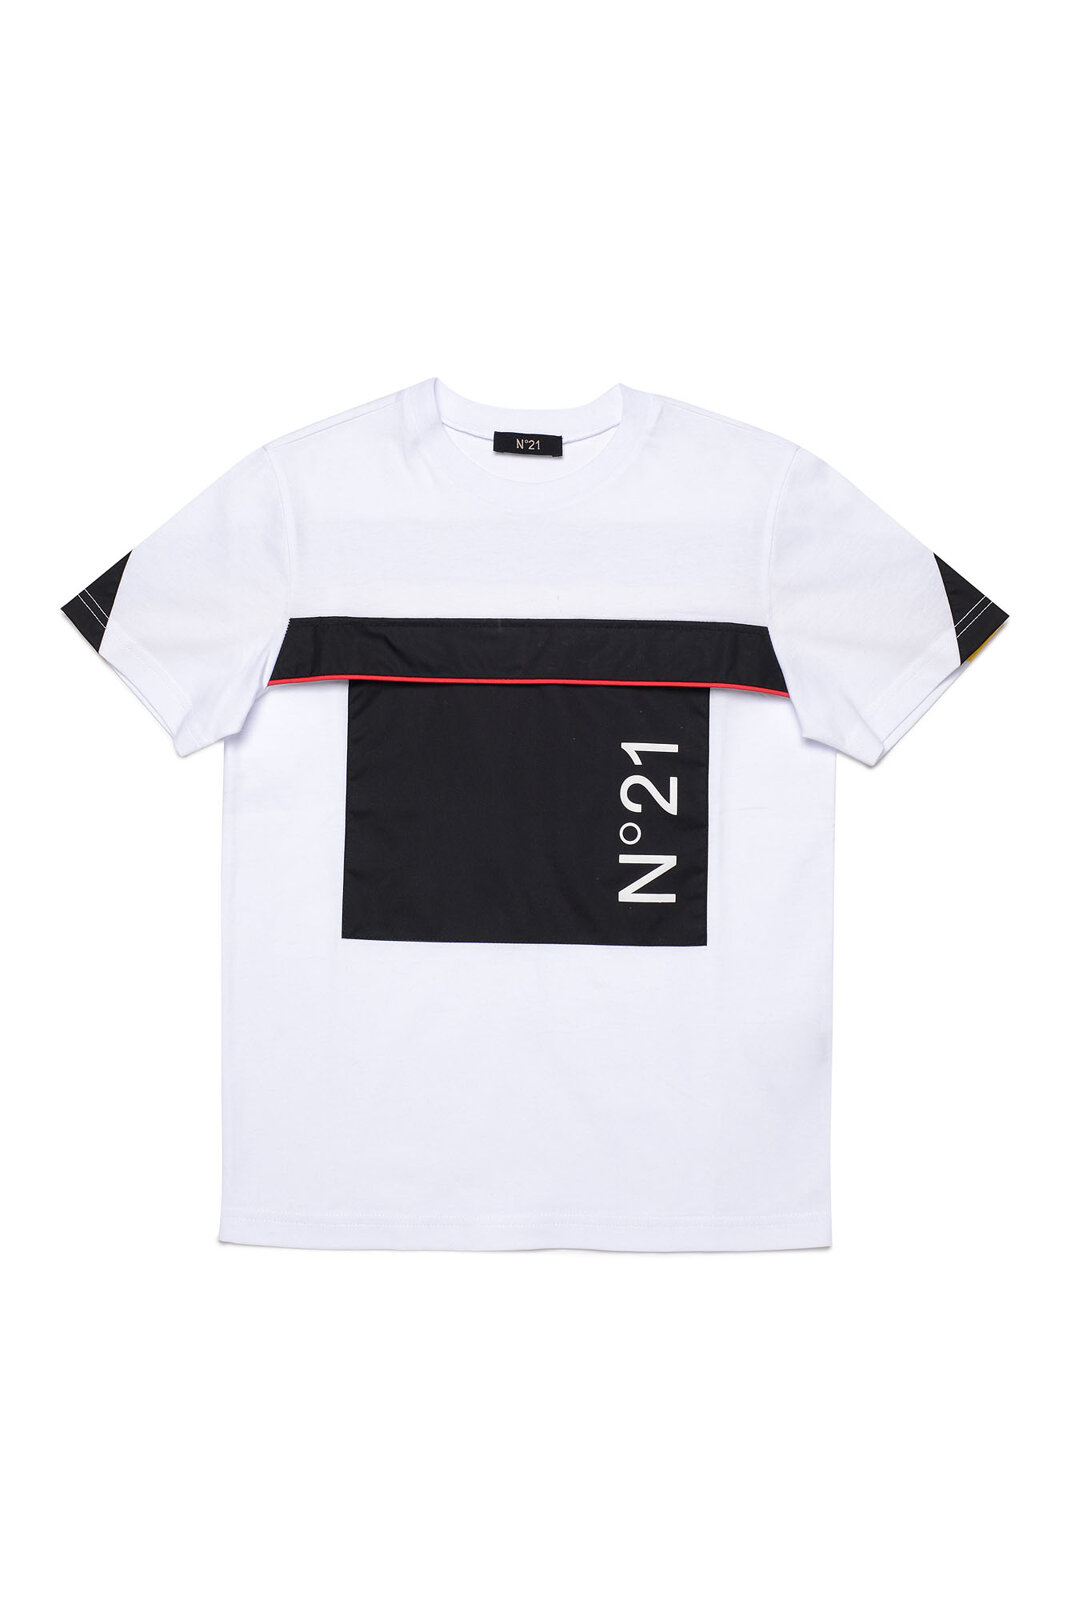 T-shirt - N21 Junior